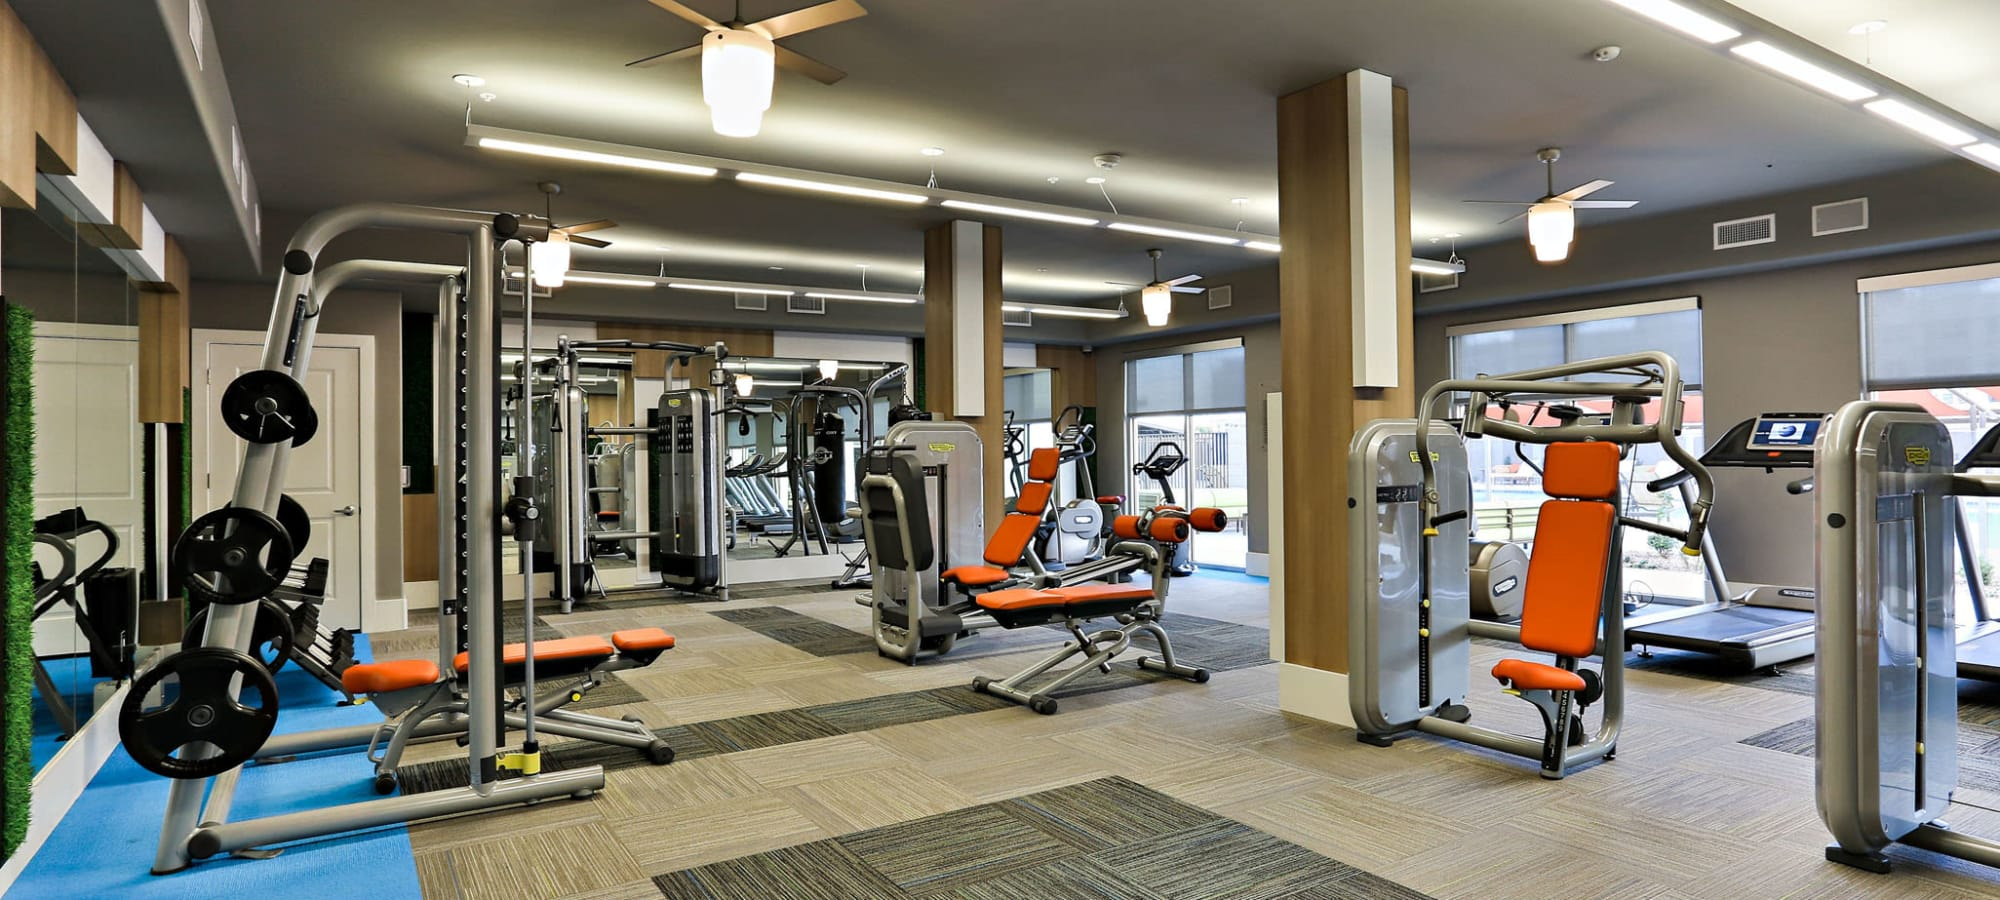 Free weights and cardio machines in the clubhouse at The Hyve in Tempe, Arizona